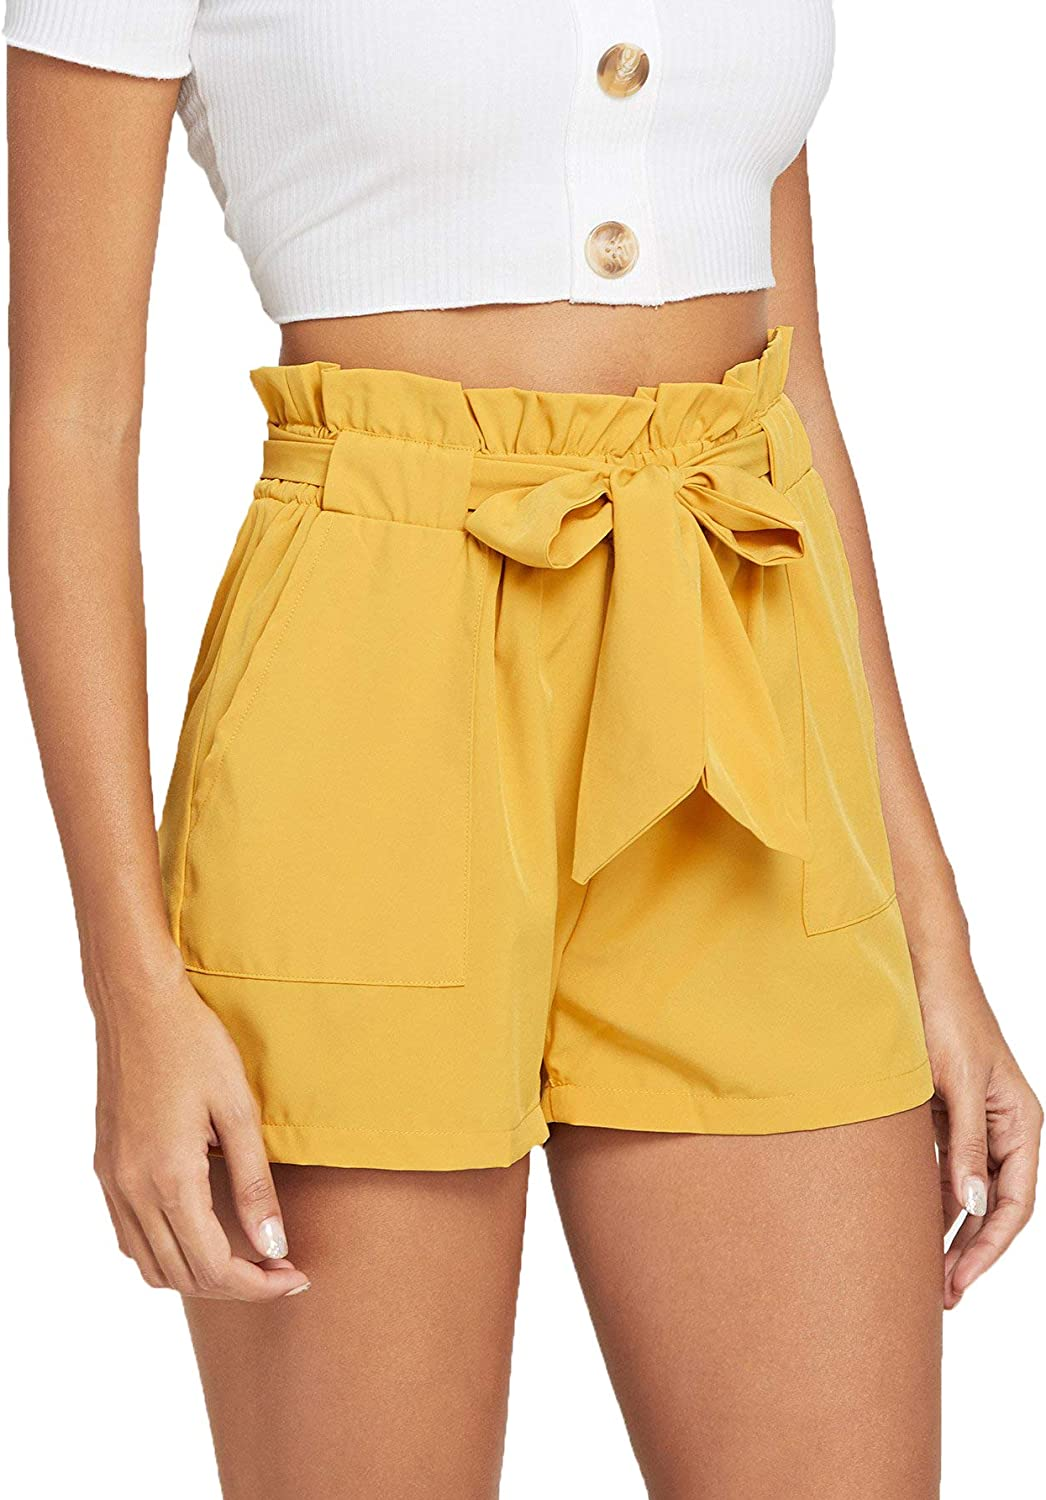 Romwe Women's Casual Elastic Waist Bowknot Summer Shorts Pockets